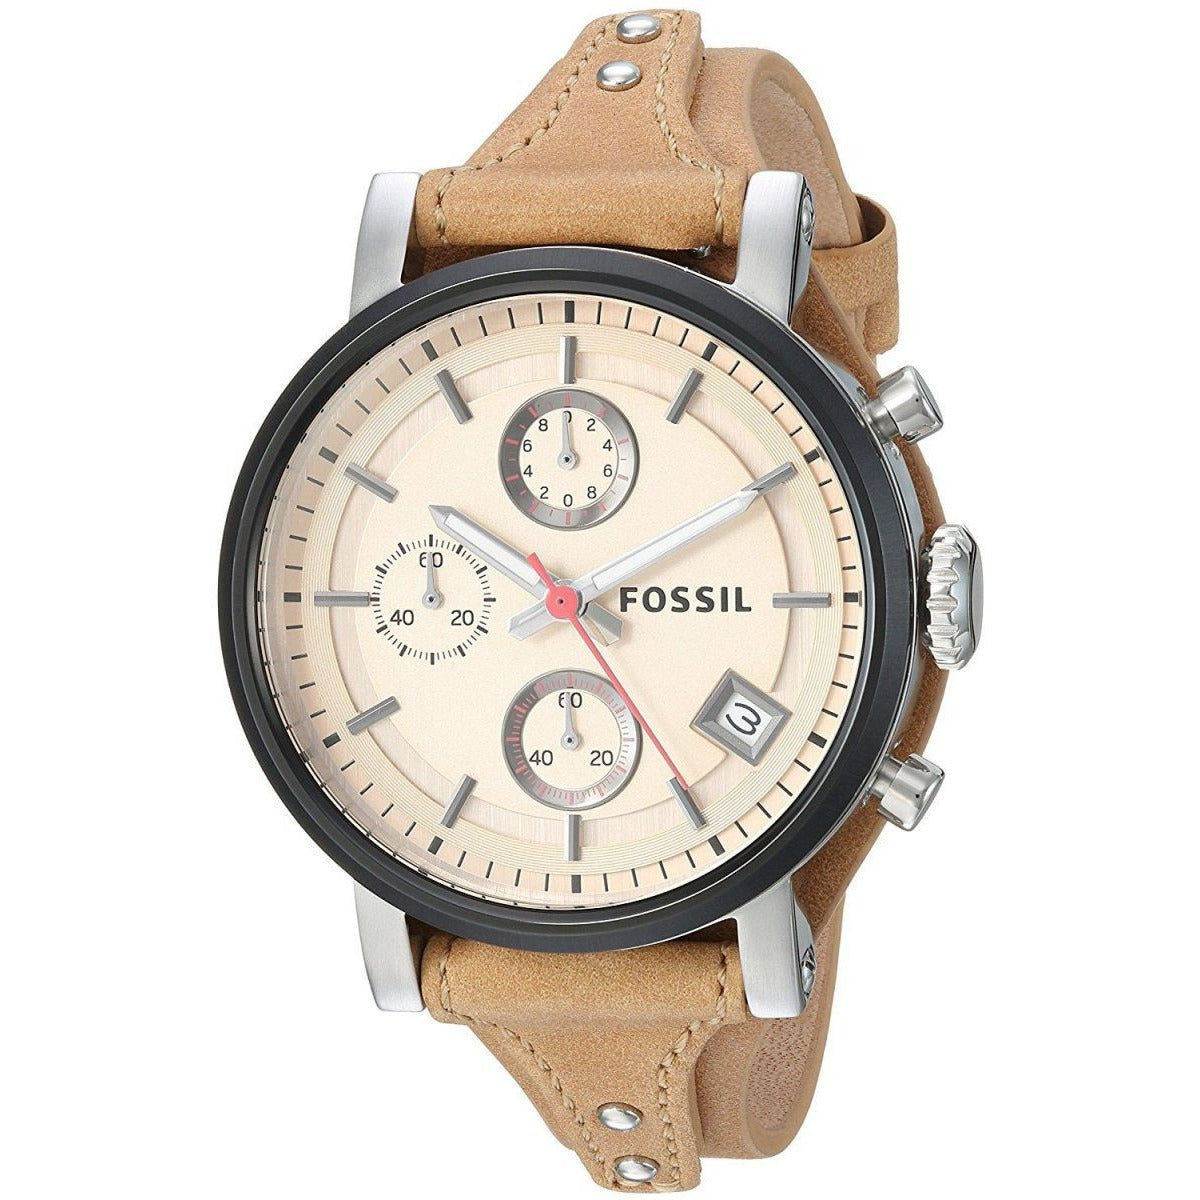 Fossil Casual Watch For Women Analog Leather - ES4177